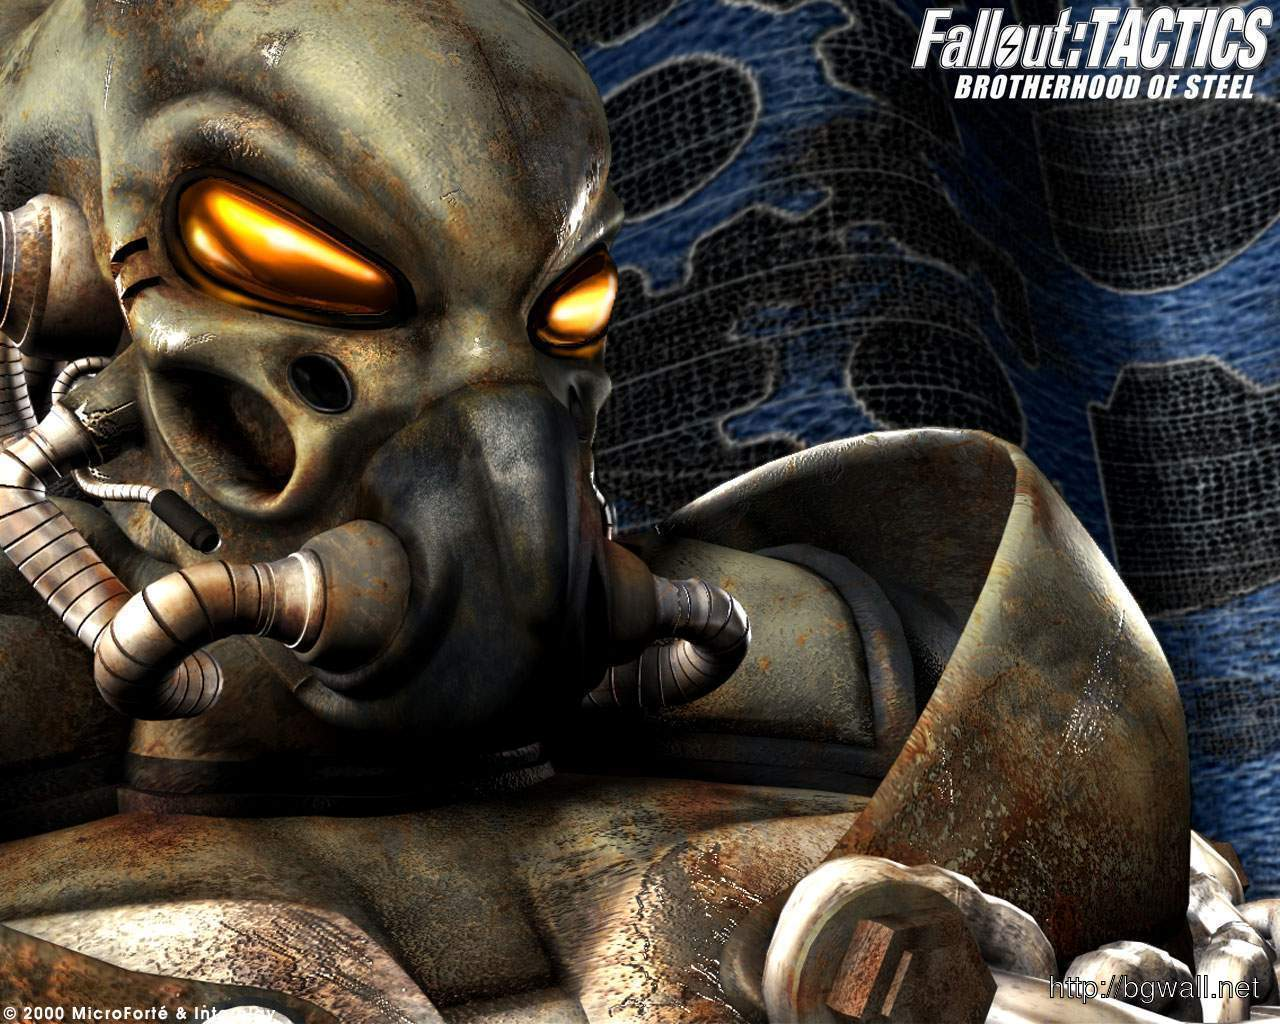 Fallout Tactics Brotherhood Of Steel Wallpaper Hd Full Size